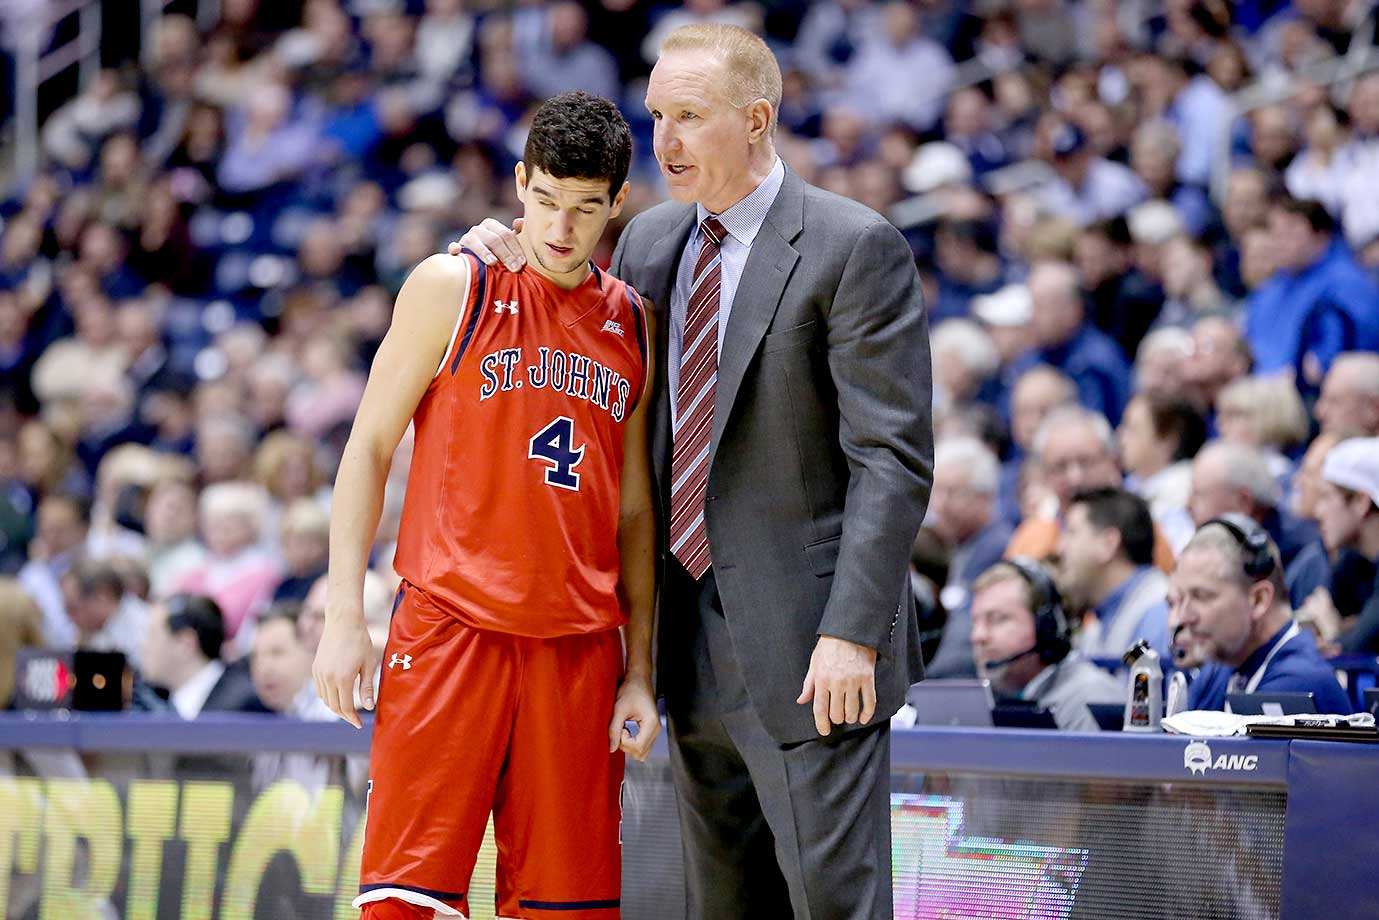 Chris Mullin, the head coach of the St. John's Red Storm, gives instructions to Federico Mussini during the game against the Xavier Musketeers at Cintas Center in Cincinnati.